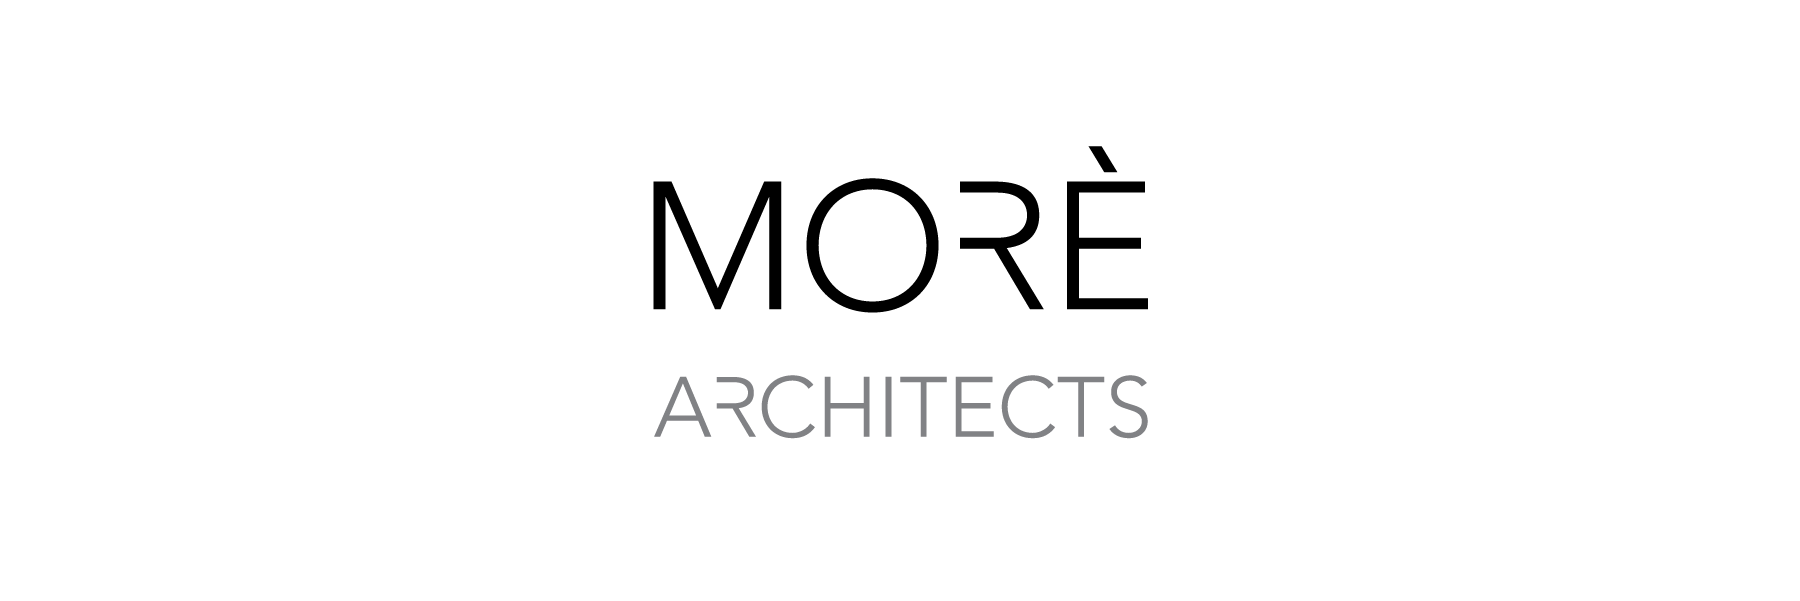 MoreArch-01.png